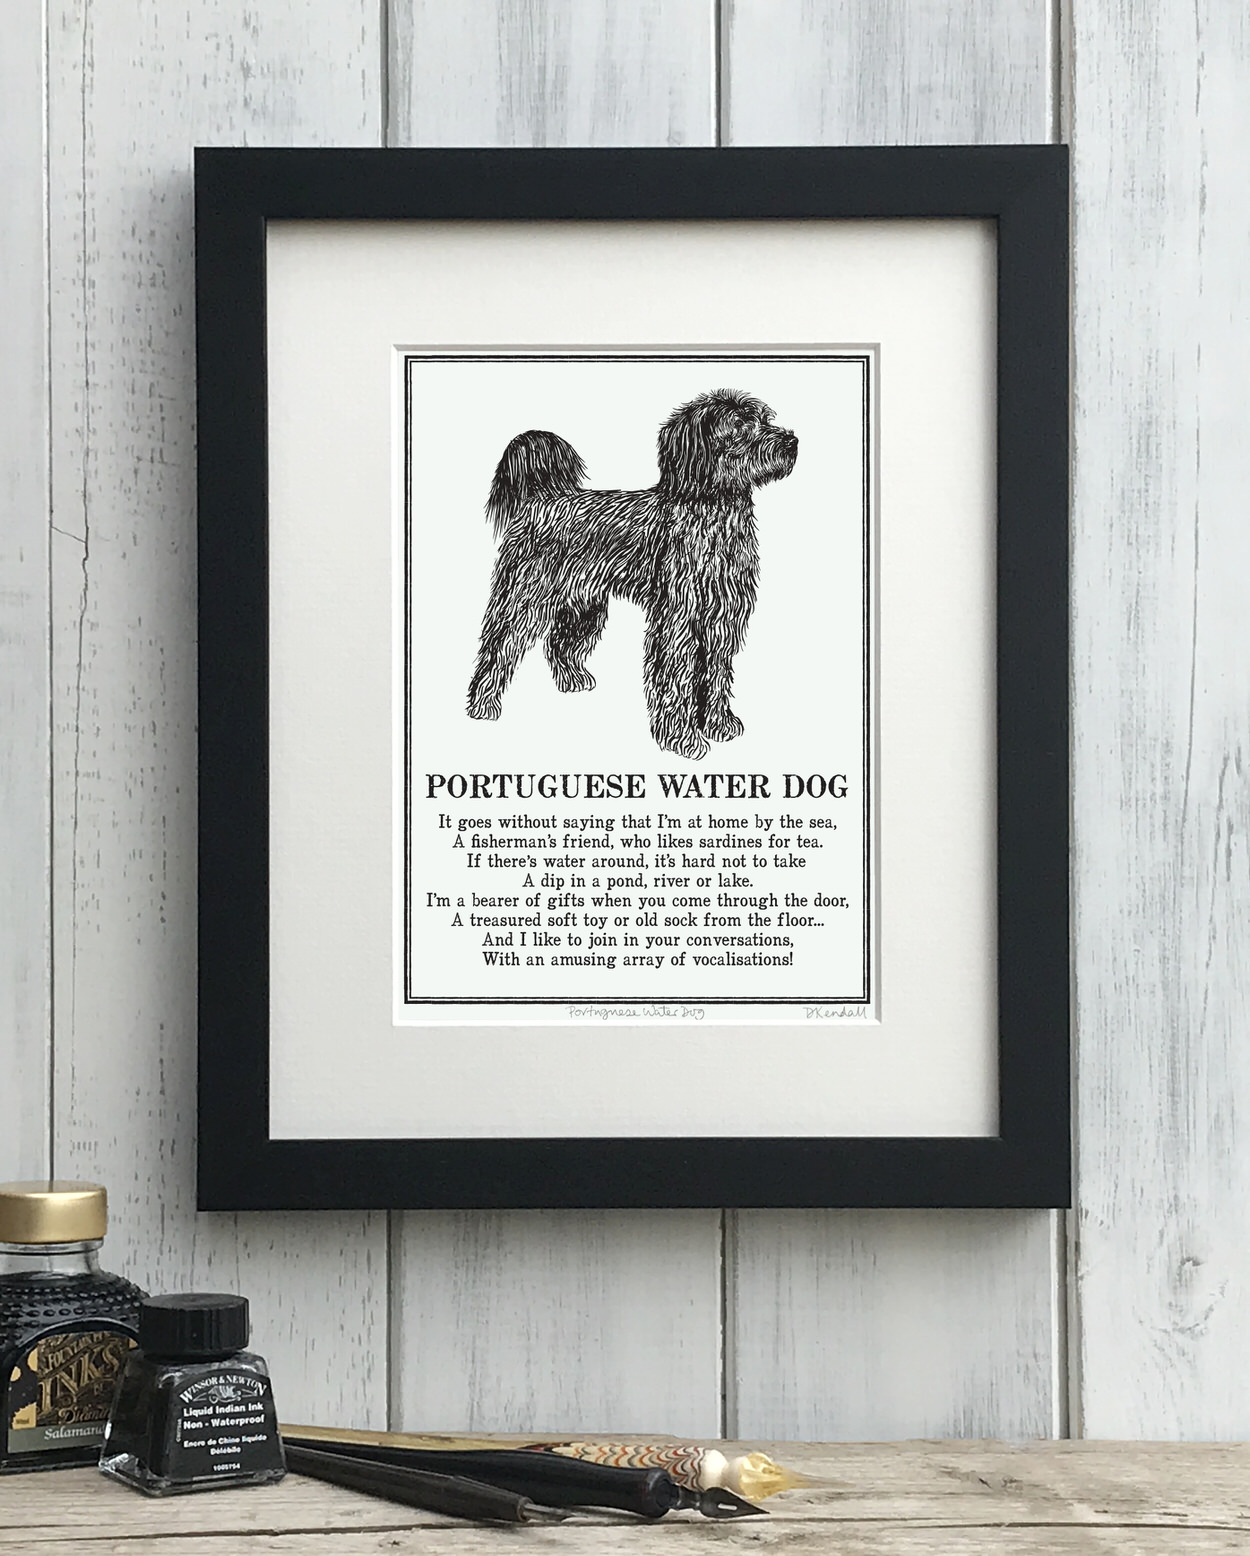 Portuguese Water Dog Illustrated Poem Print | The Enlightened Hound